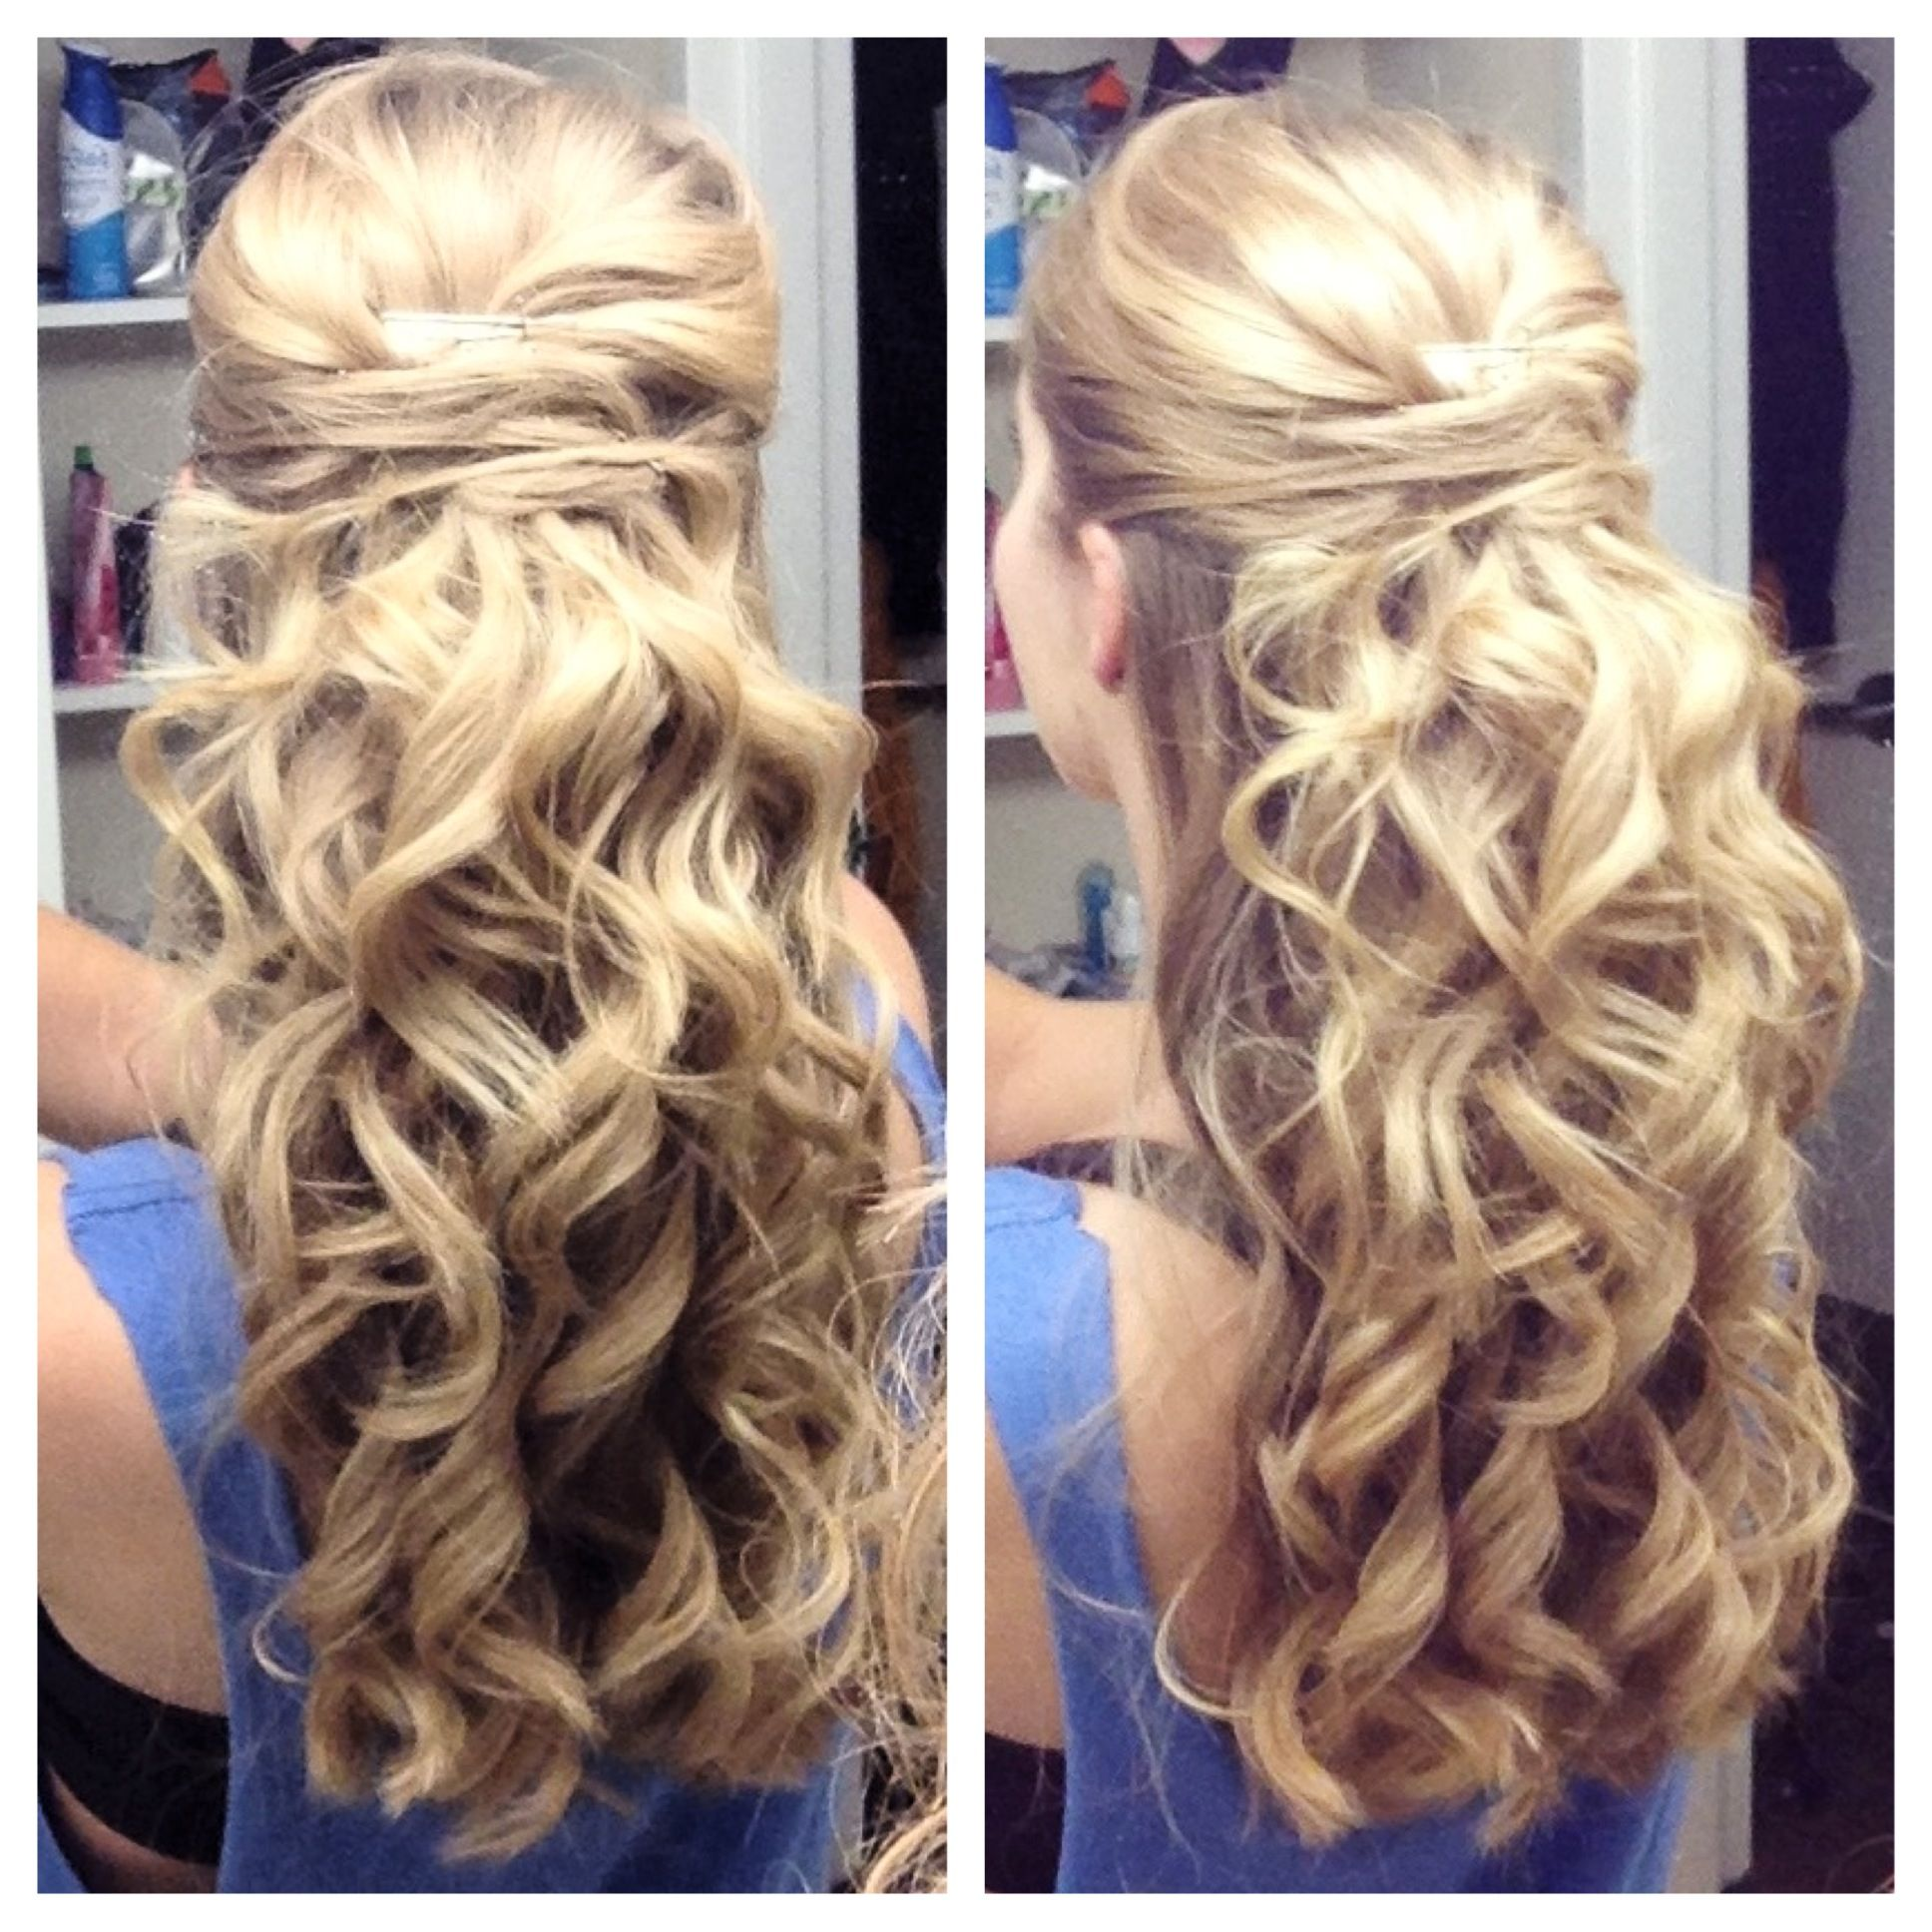 Easy do it yourself hair style our wedding pinterest easy do it yourself hair style solutioingenieria Image collections